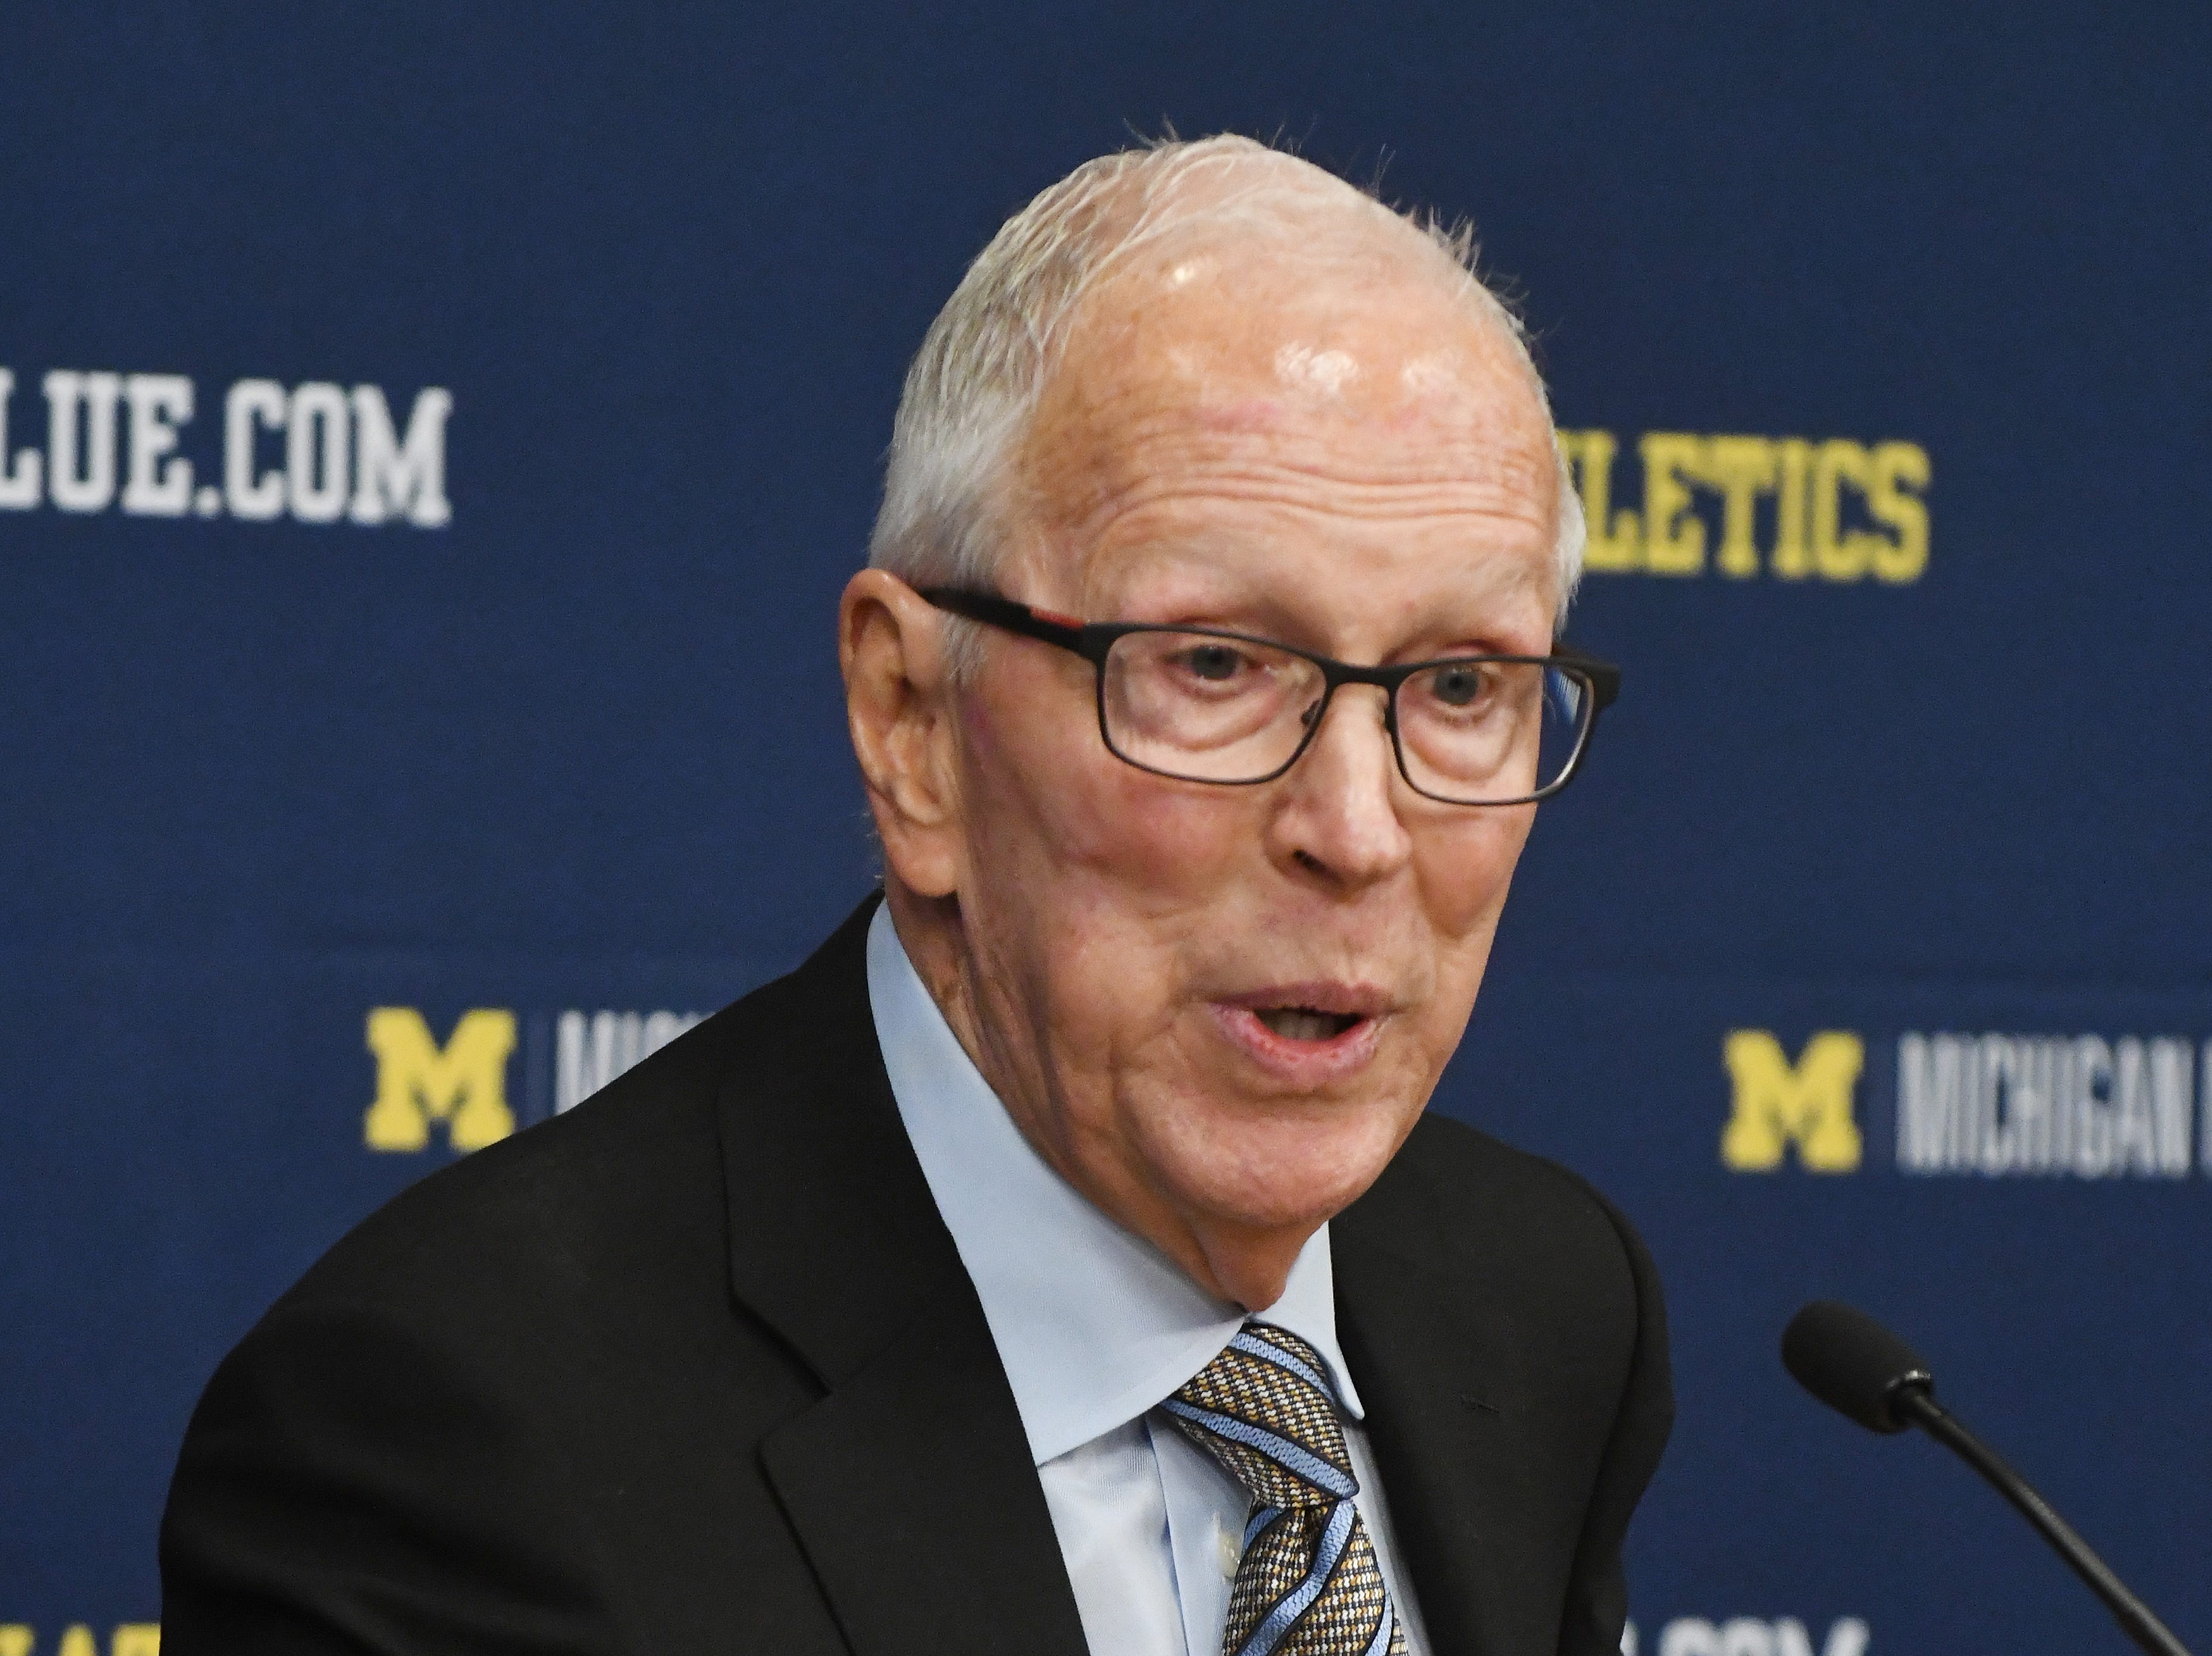 Michigan's 1989 NCAA Championship coach Steve Fisher at a press conference before the game.